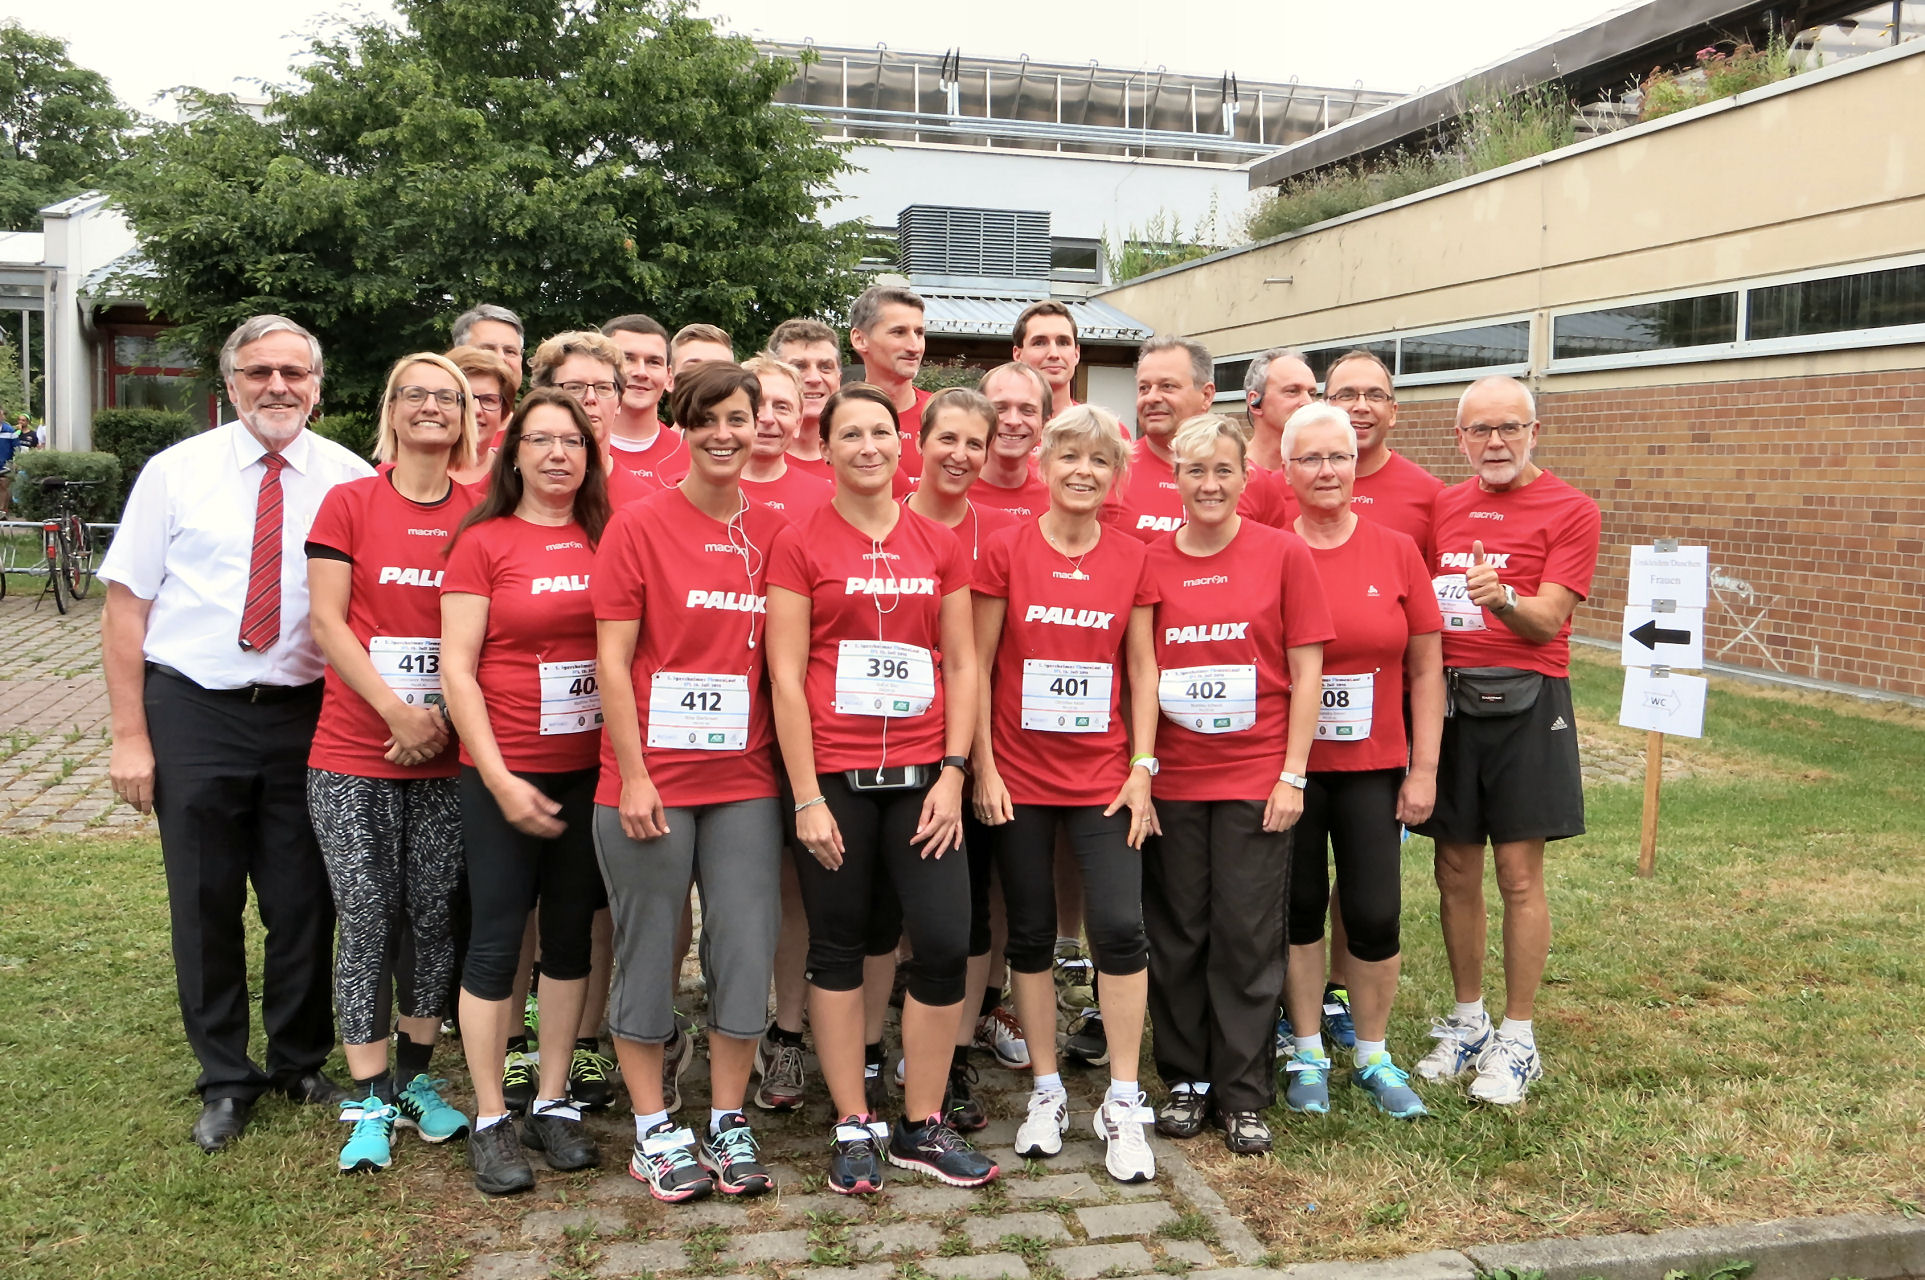 PALUX participated at the pany Run in Igersheim